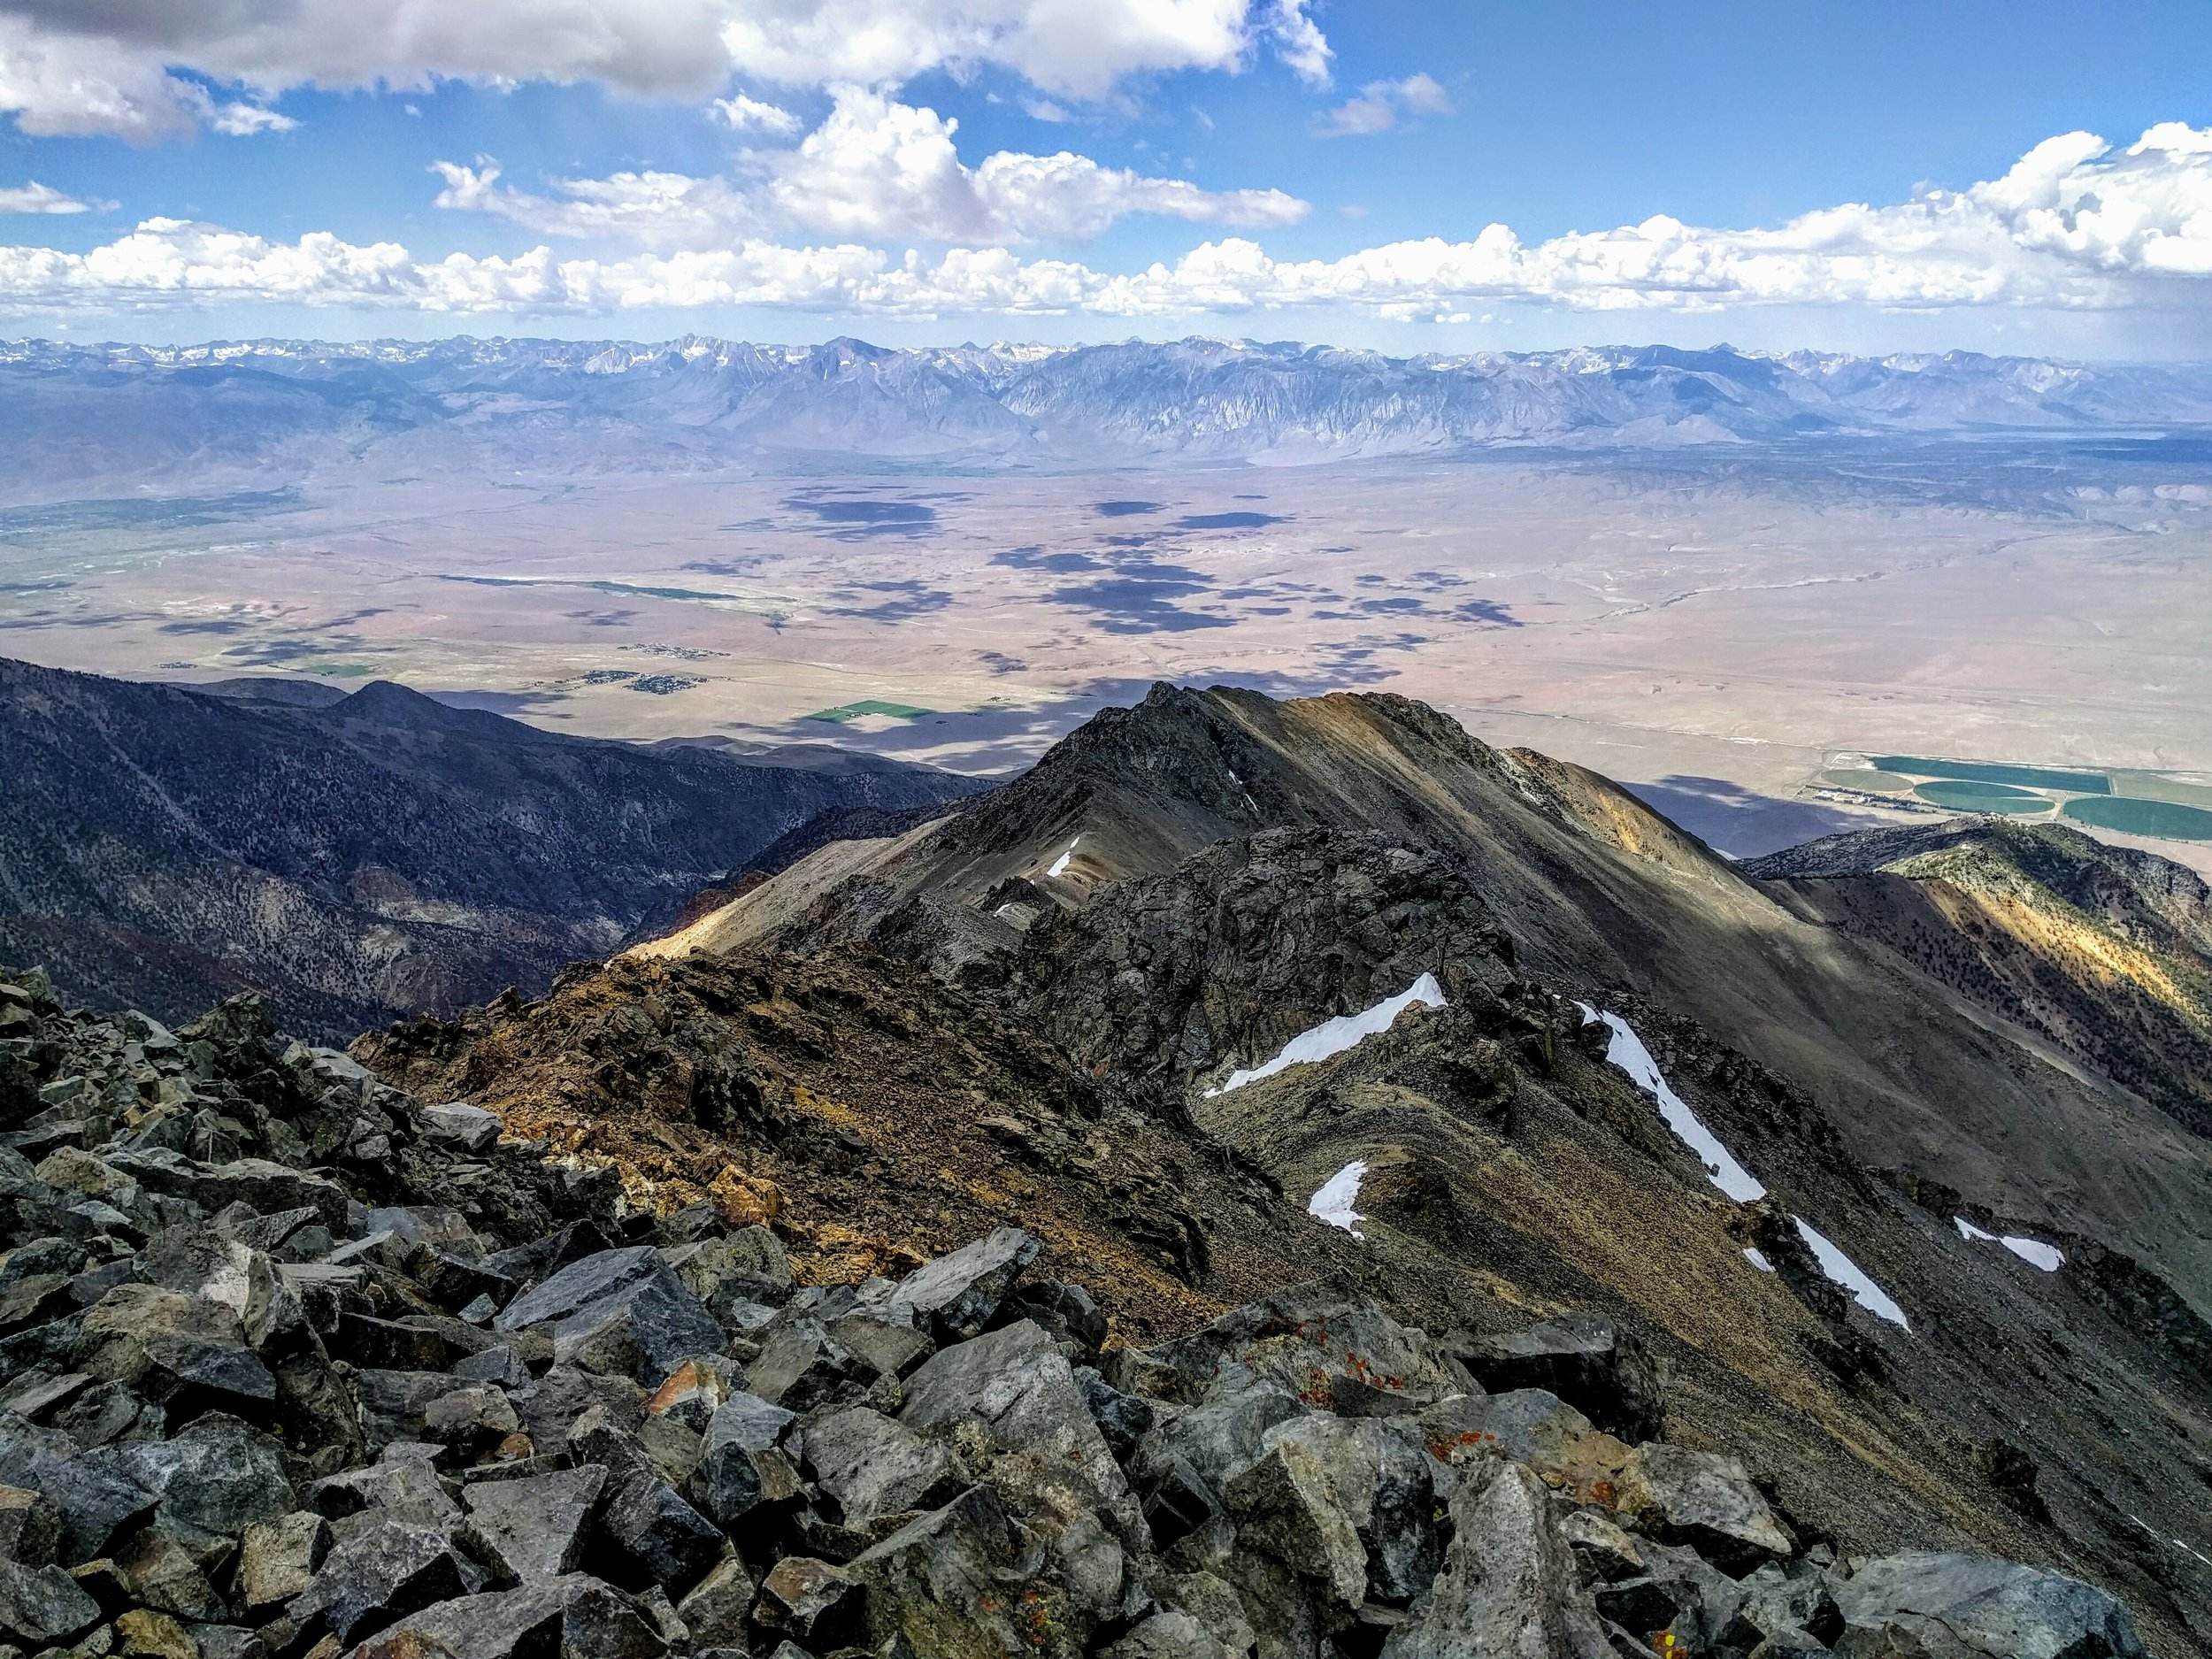 View from the summit of White Mountain (14,252 feet)